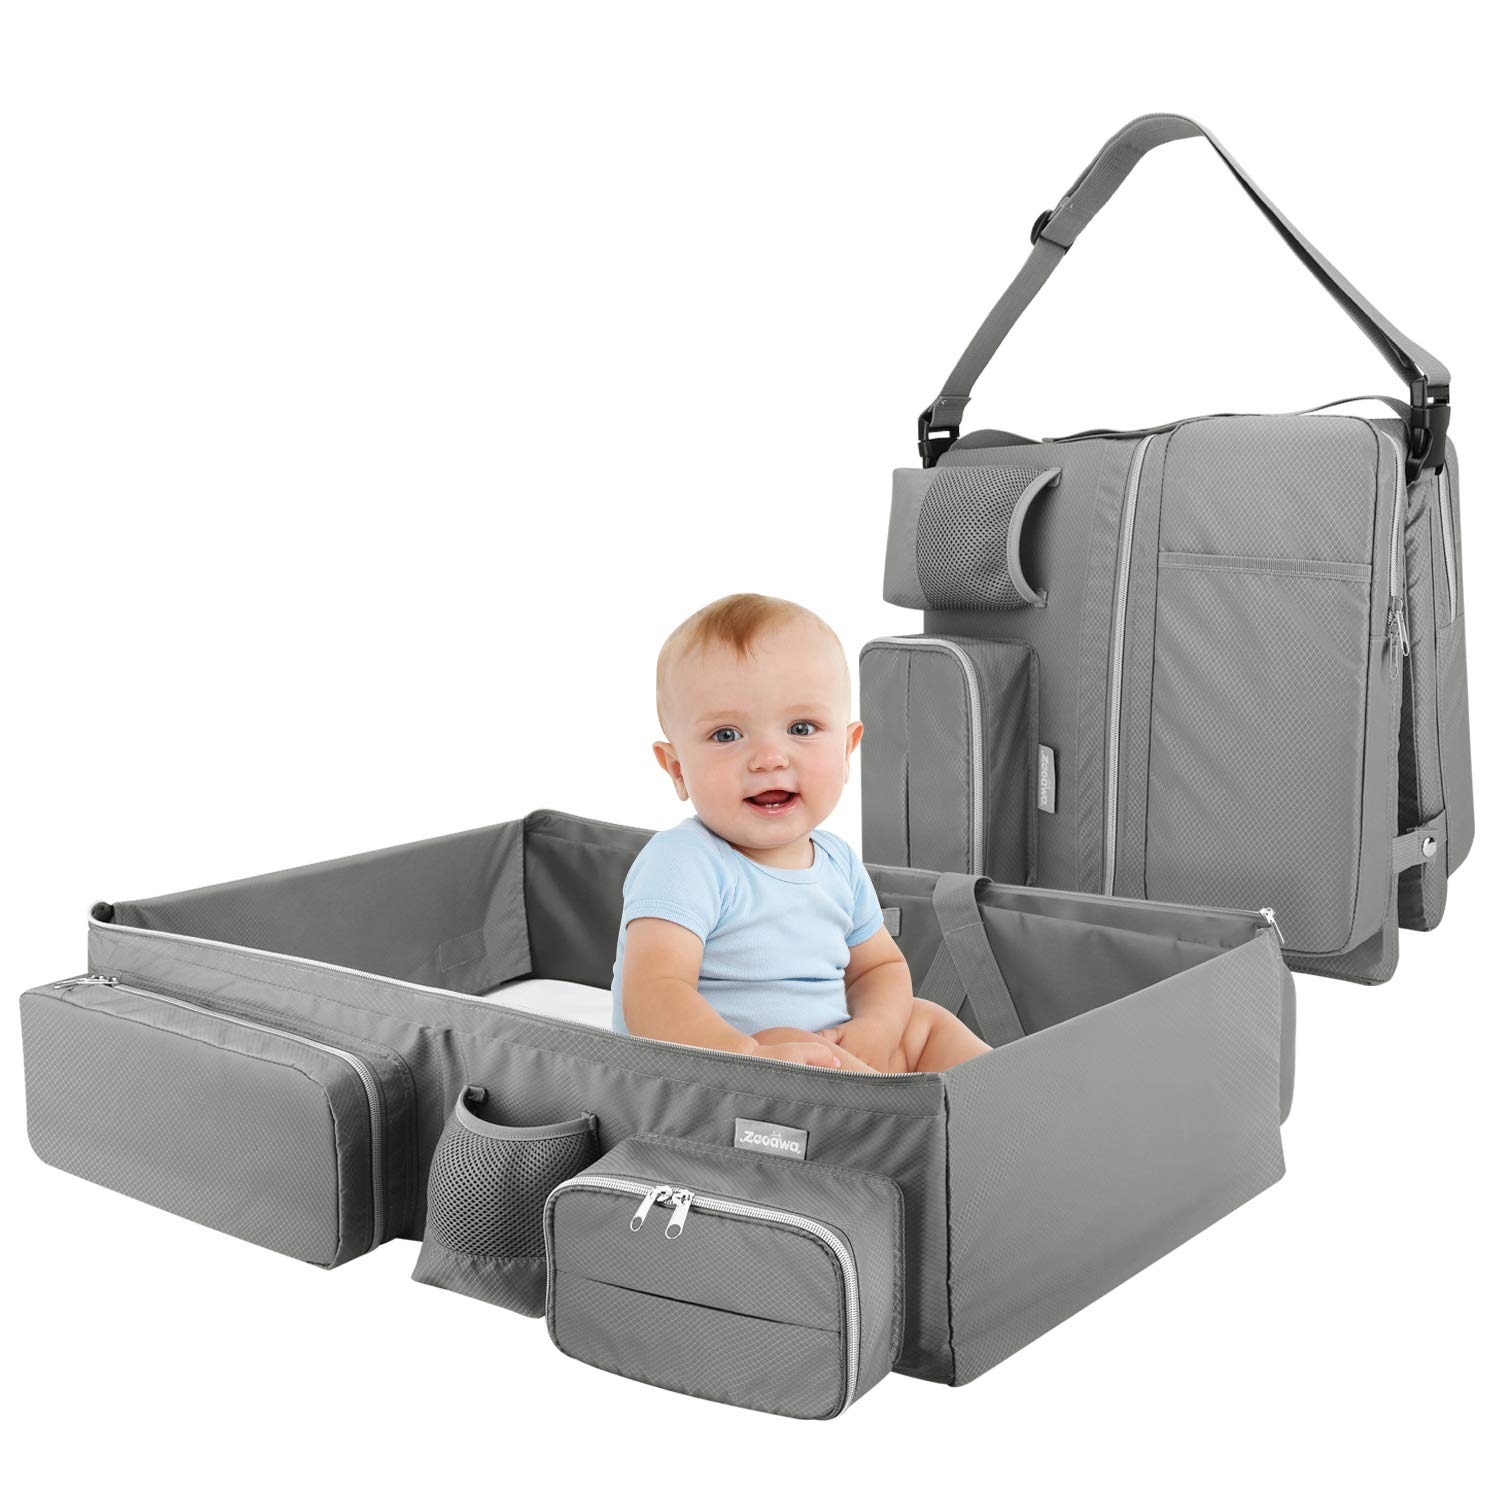 Zooawa Foldable Travel Bassinet, 3-in-1 Diaper Bag Portable Collapsible Bassinet and Travel Changing Station for Home Travel Outdoor Use, Gray by Zooawa